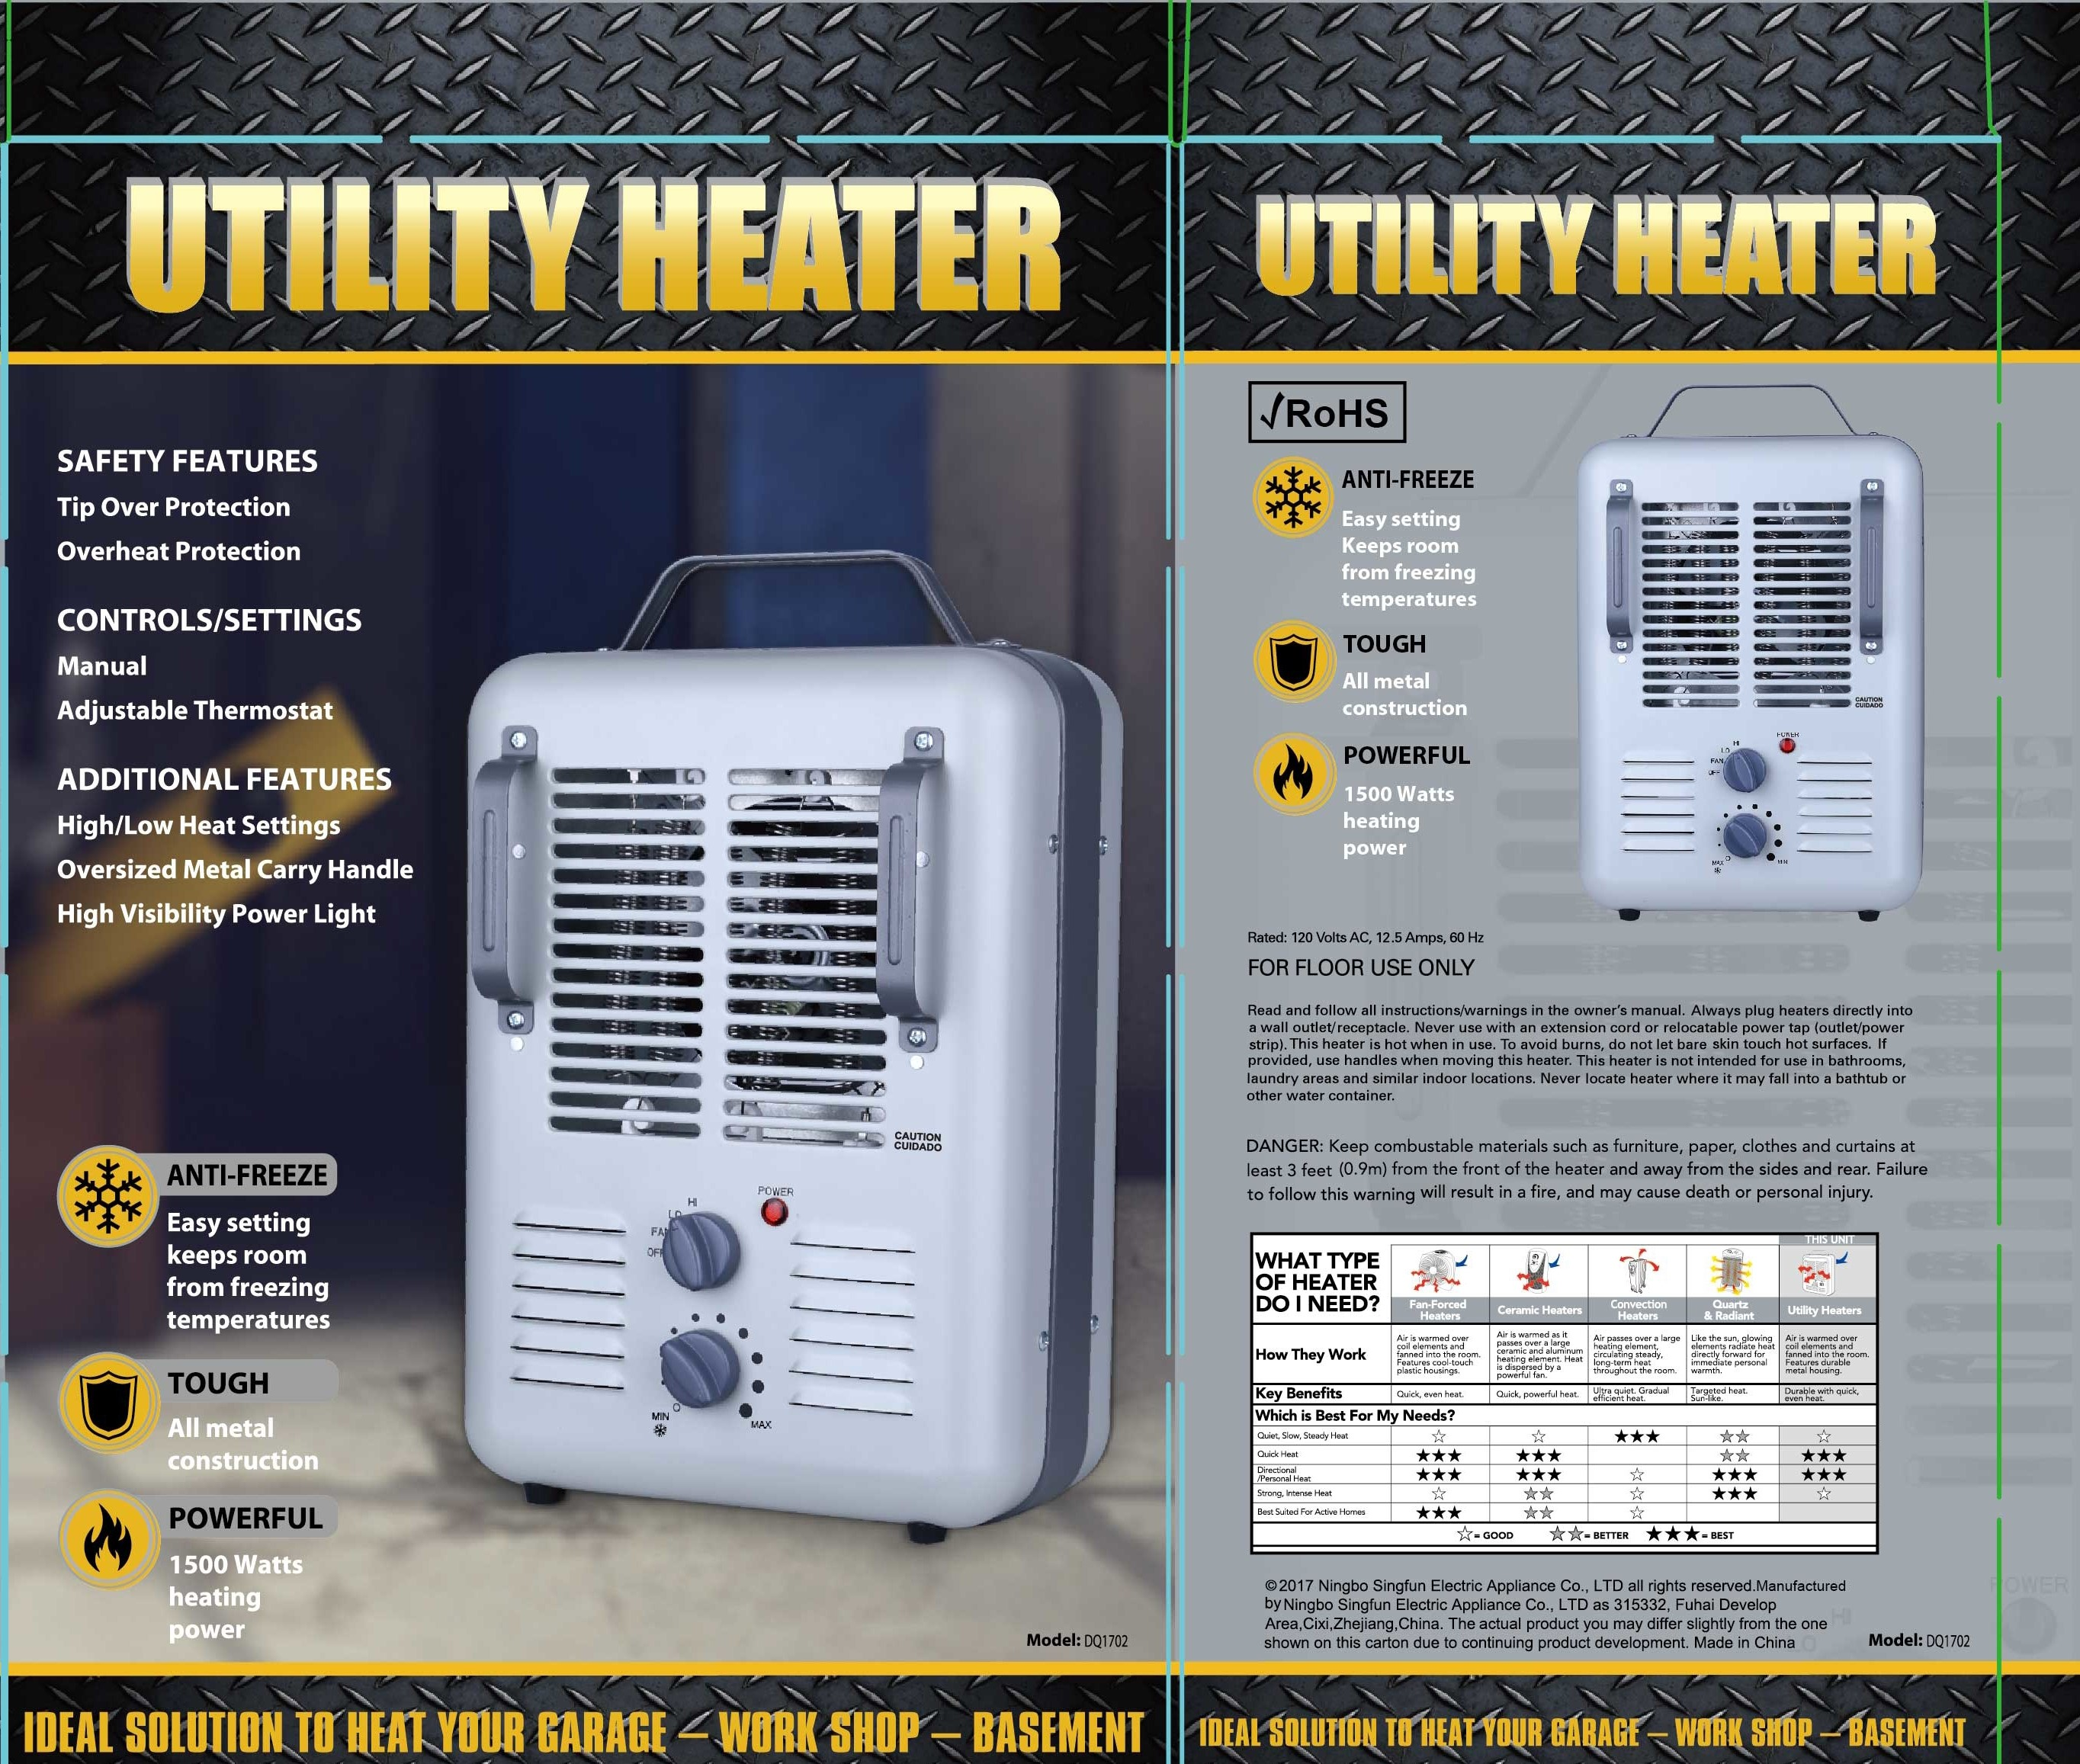 Patton 1500 Watt Utility Heater Wiring Diagram Free Download Oasis Ceramic Milkhouse Style Electric Space Dq1702 Walmart Com At